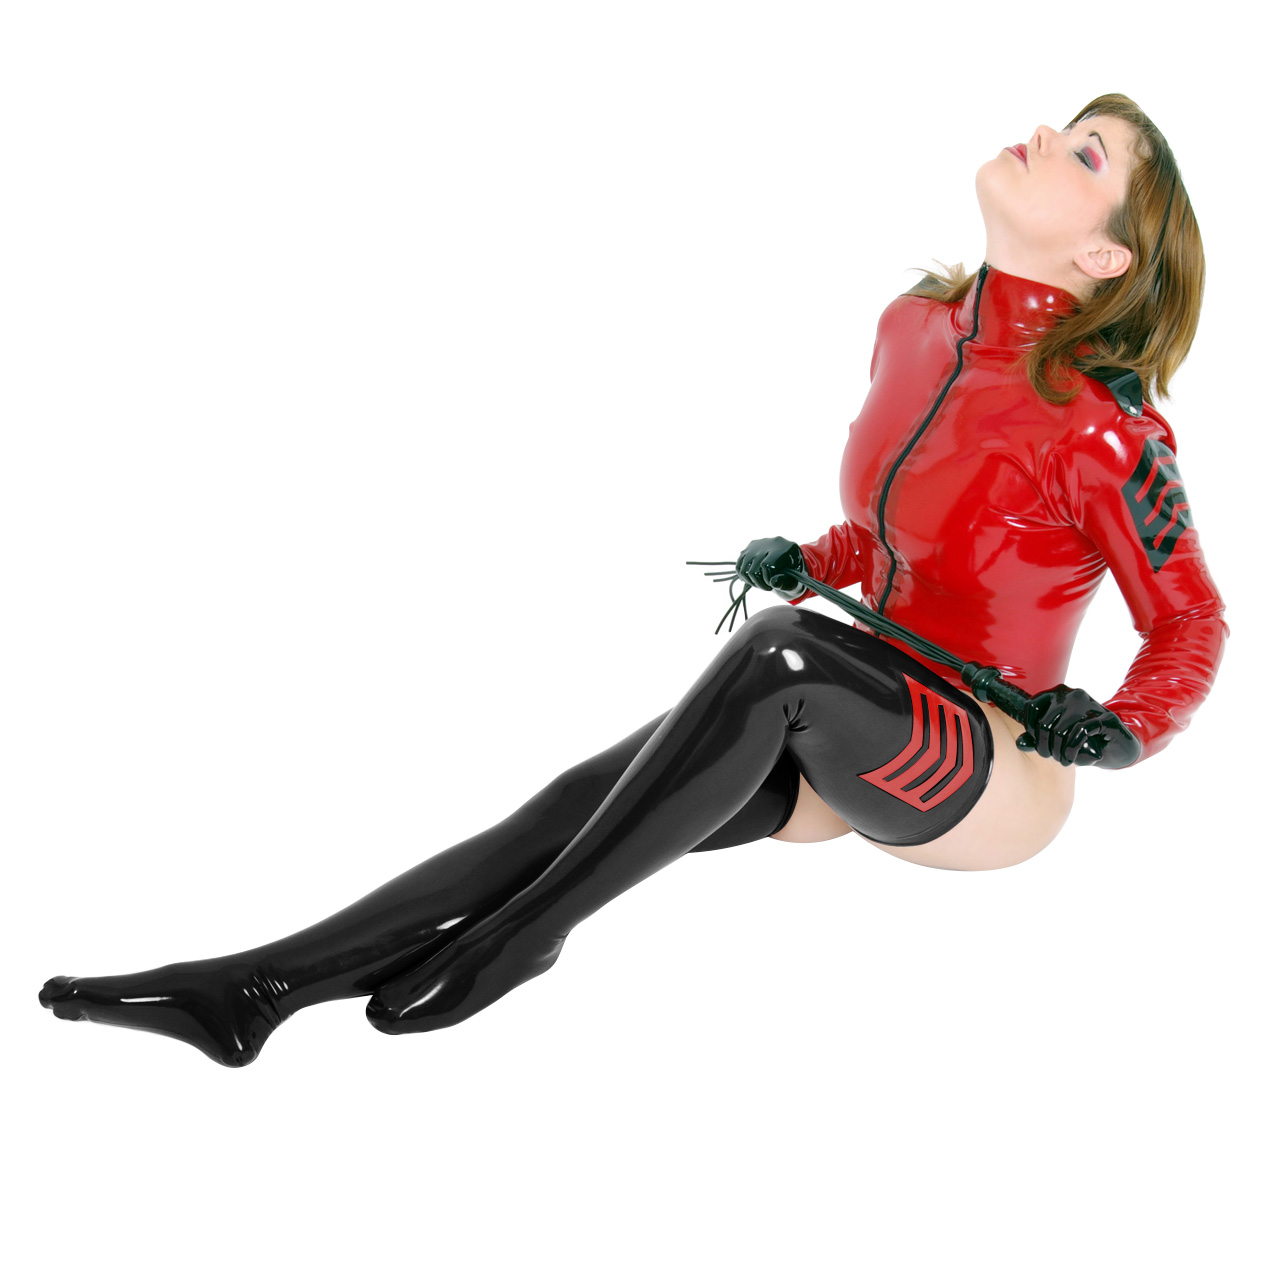 Latex Strømper Uniform